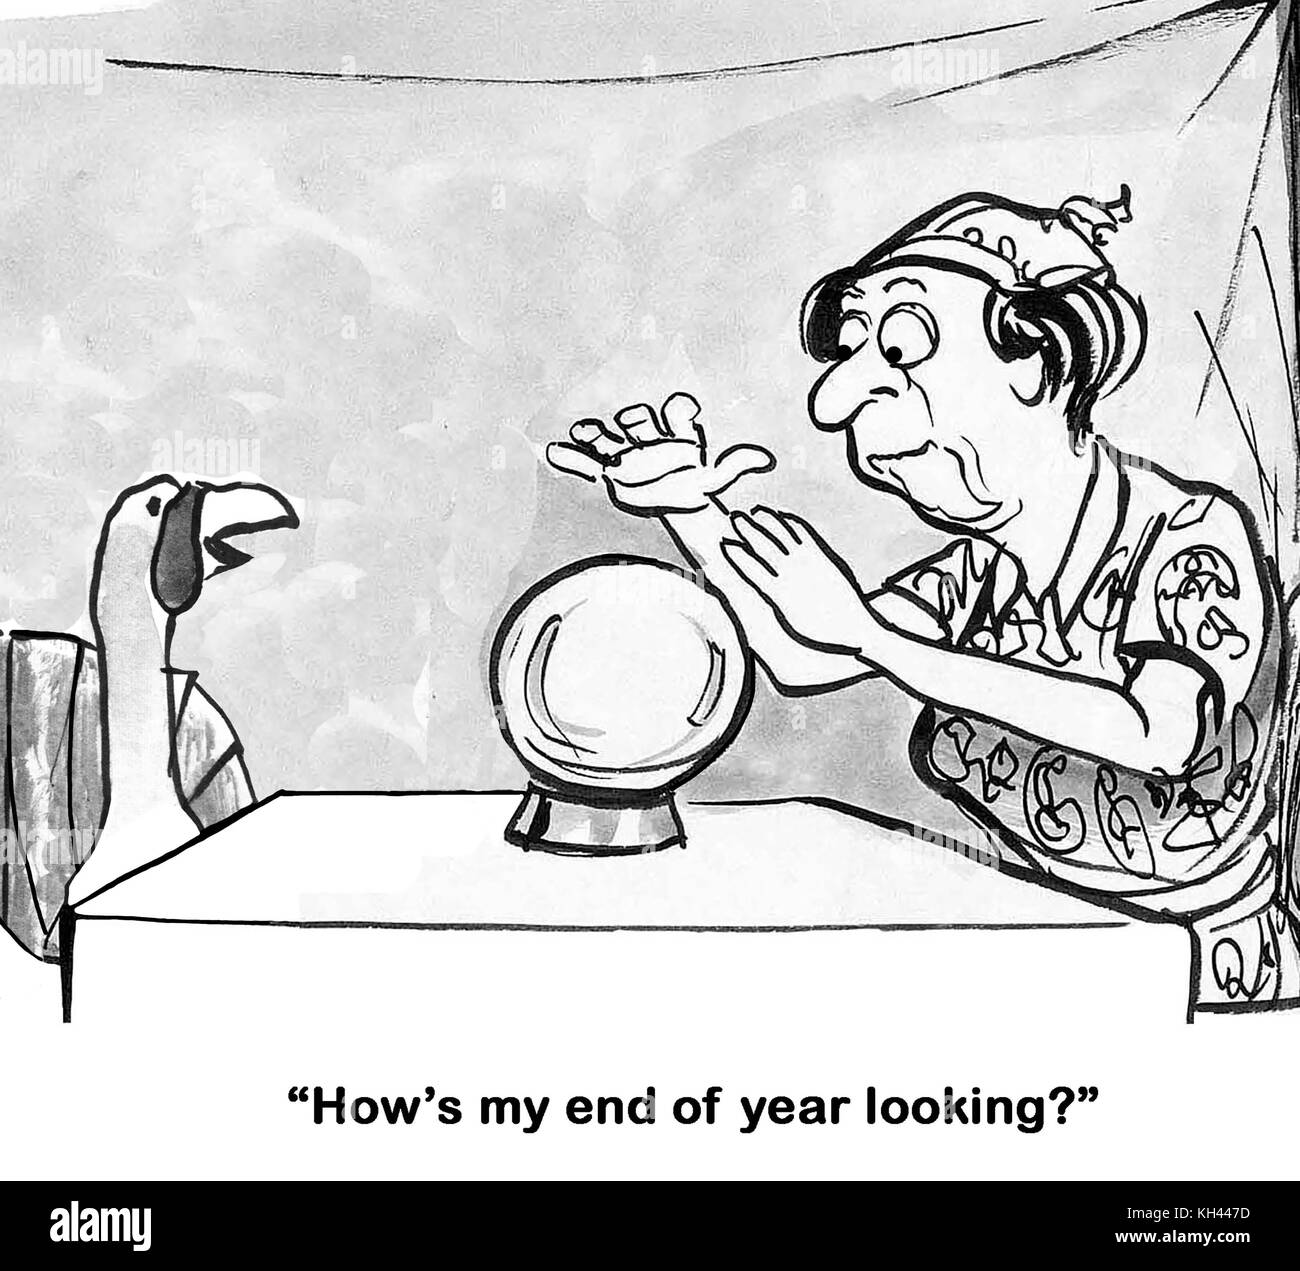 Christmas or Thanksgiving cartoon about a turkey asking a fortune teller how his year-end is looking. - Stock Image